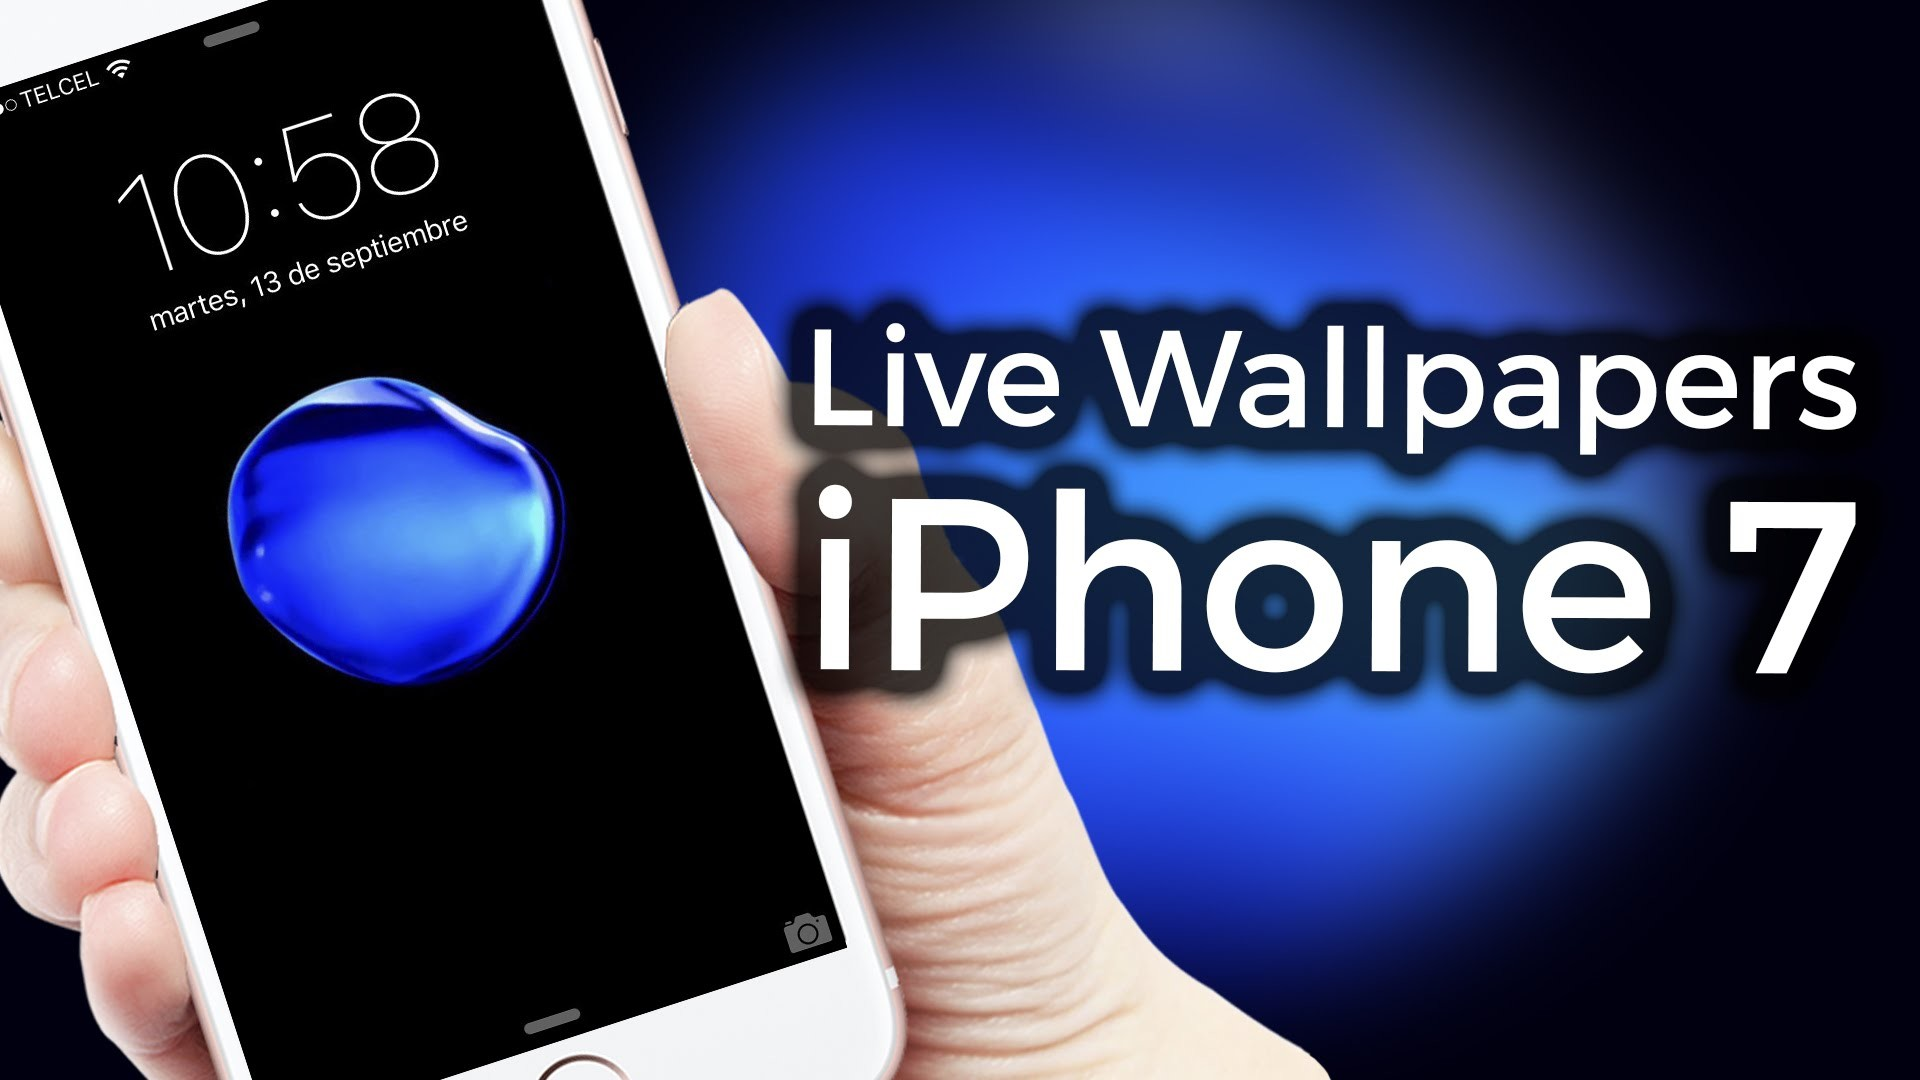 1920x1080 iPhone 7 Live Wallpapers, iPhone 5S,6,6S Cydia tweak | ZIDACO - YouTube